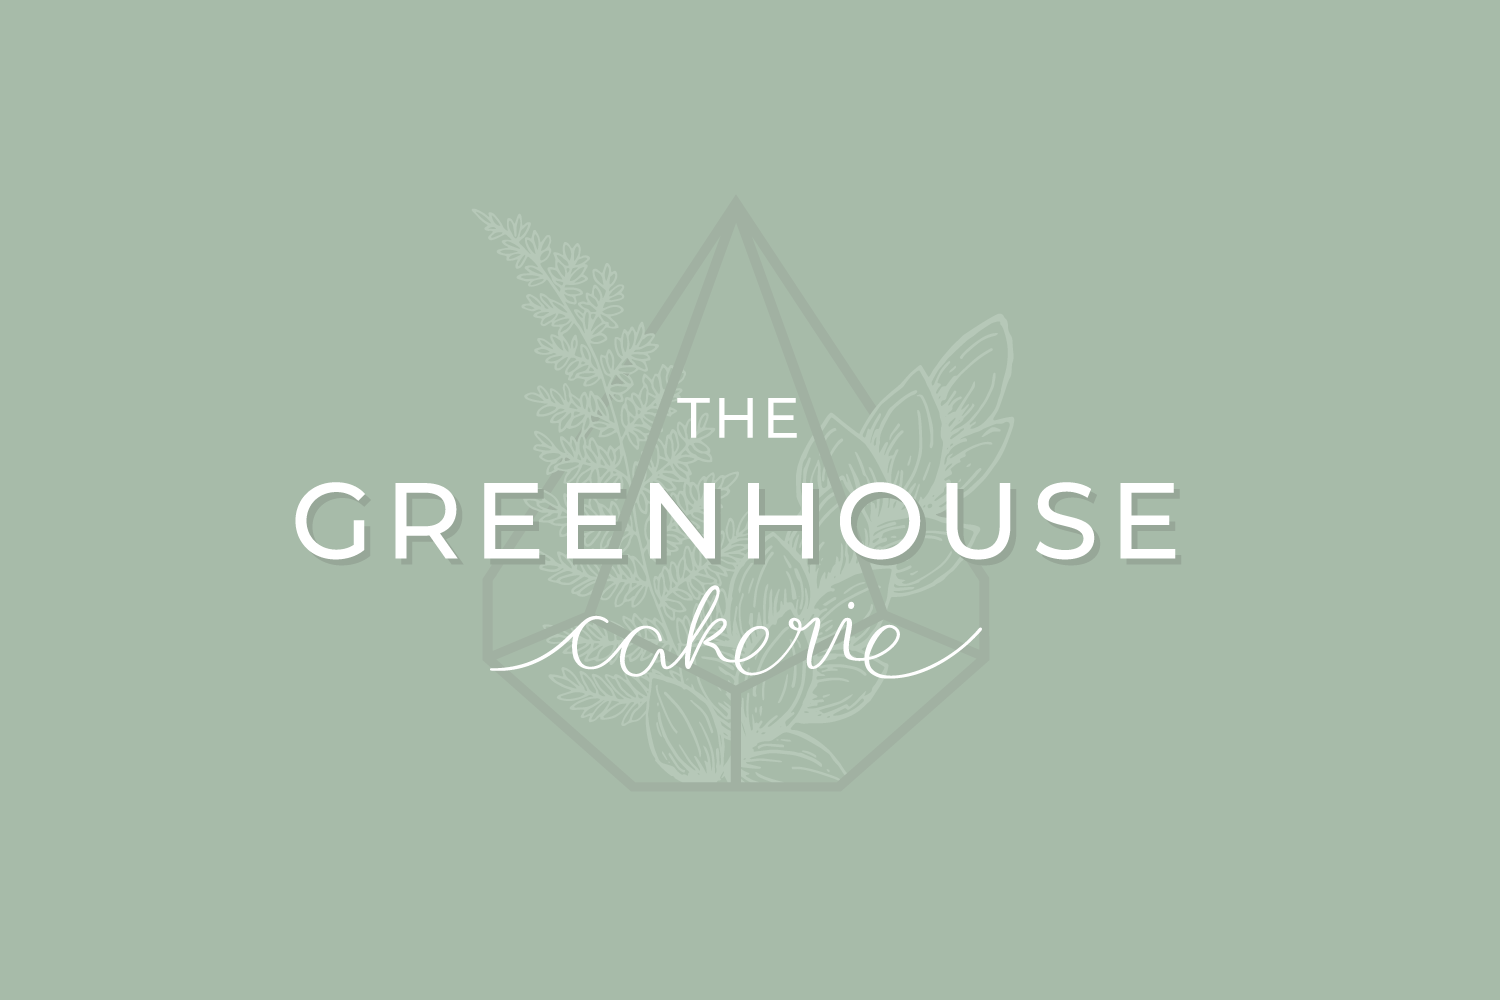 The Greenhouse Cakerie - Logo and Branding design for small businesses by Bea & Bloom Creative Design Studio